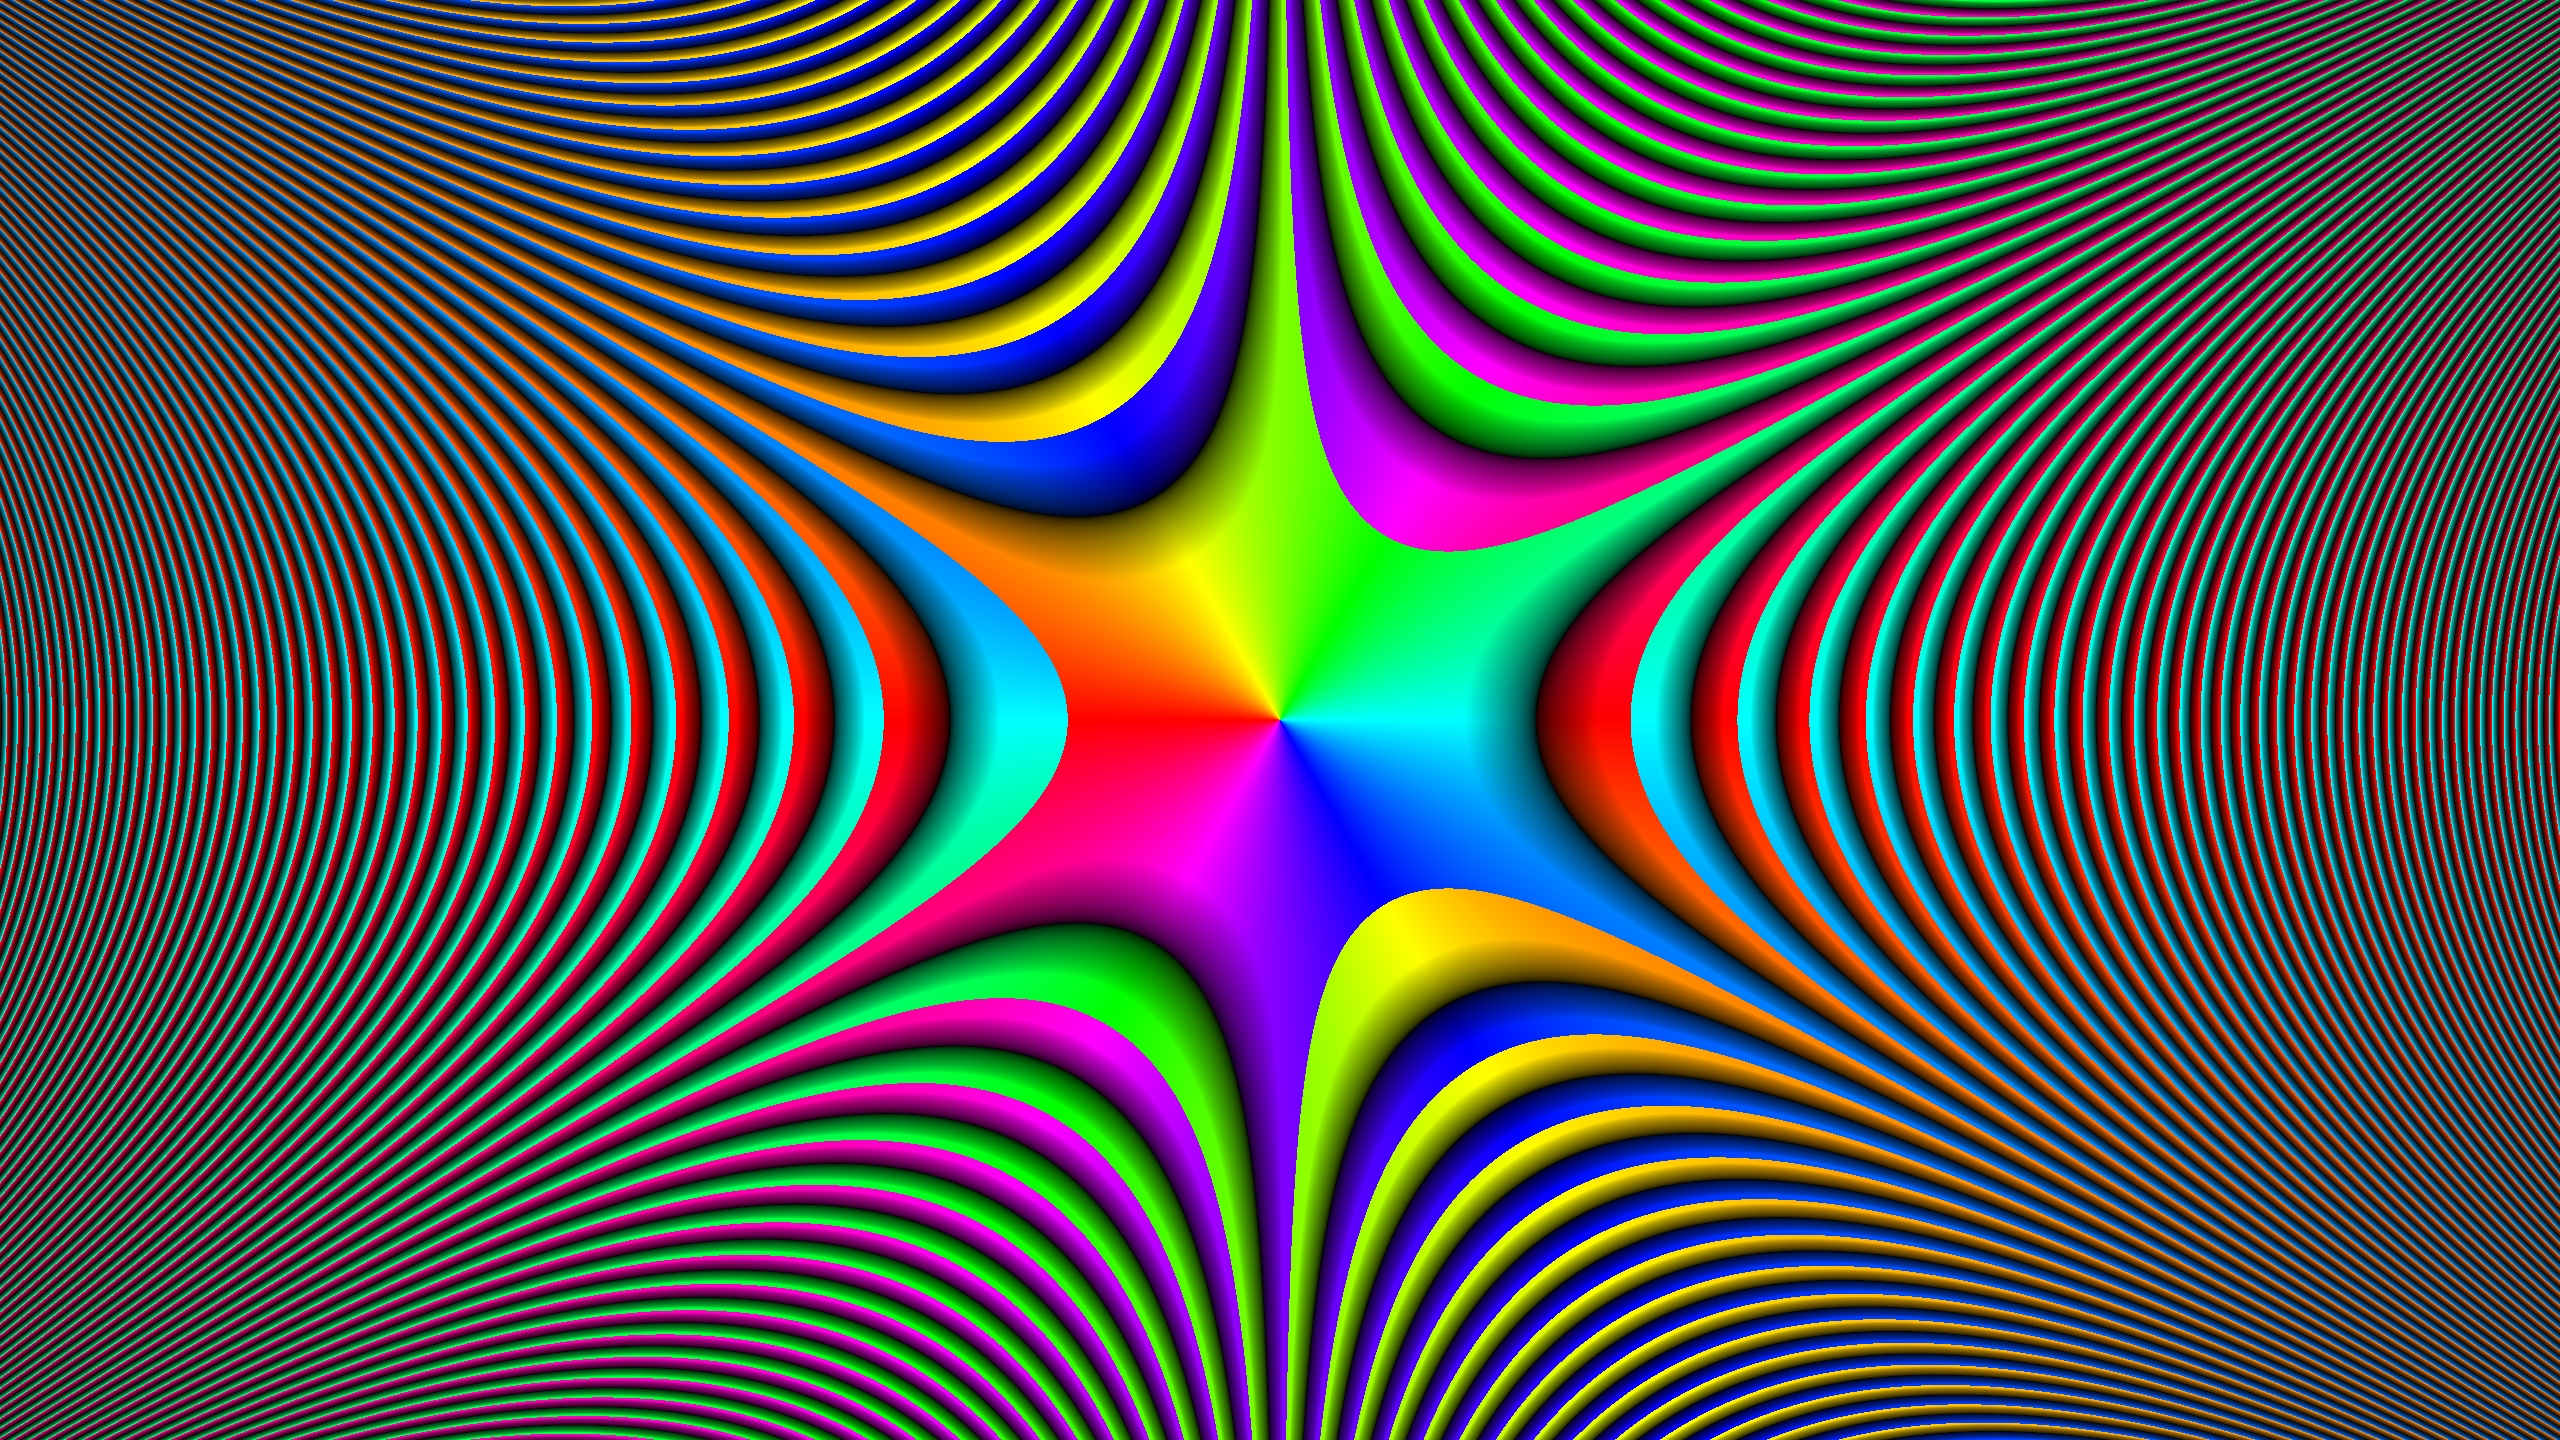 Optical Illusion Wallpapers  Android Apps on Google Play 2560x1440